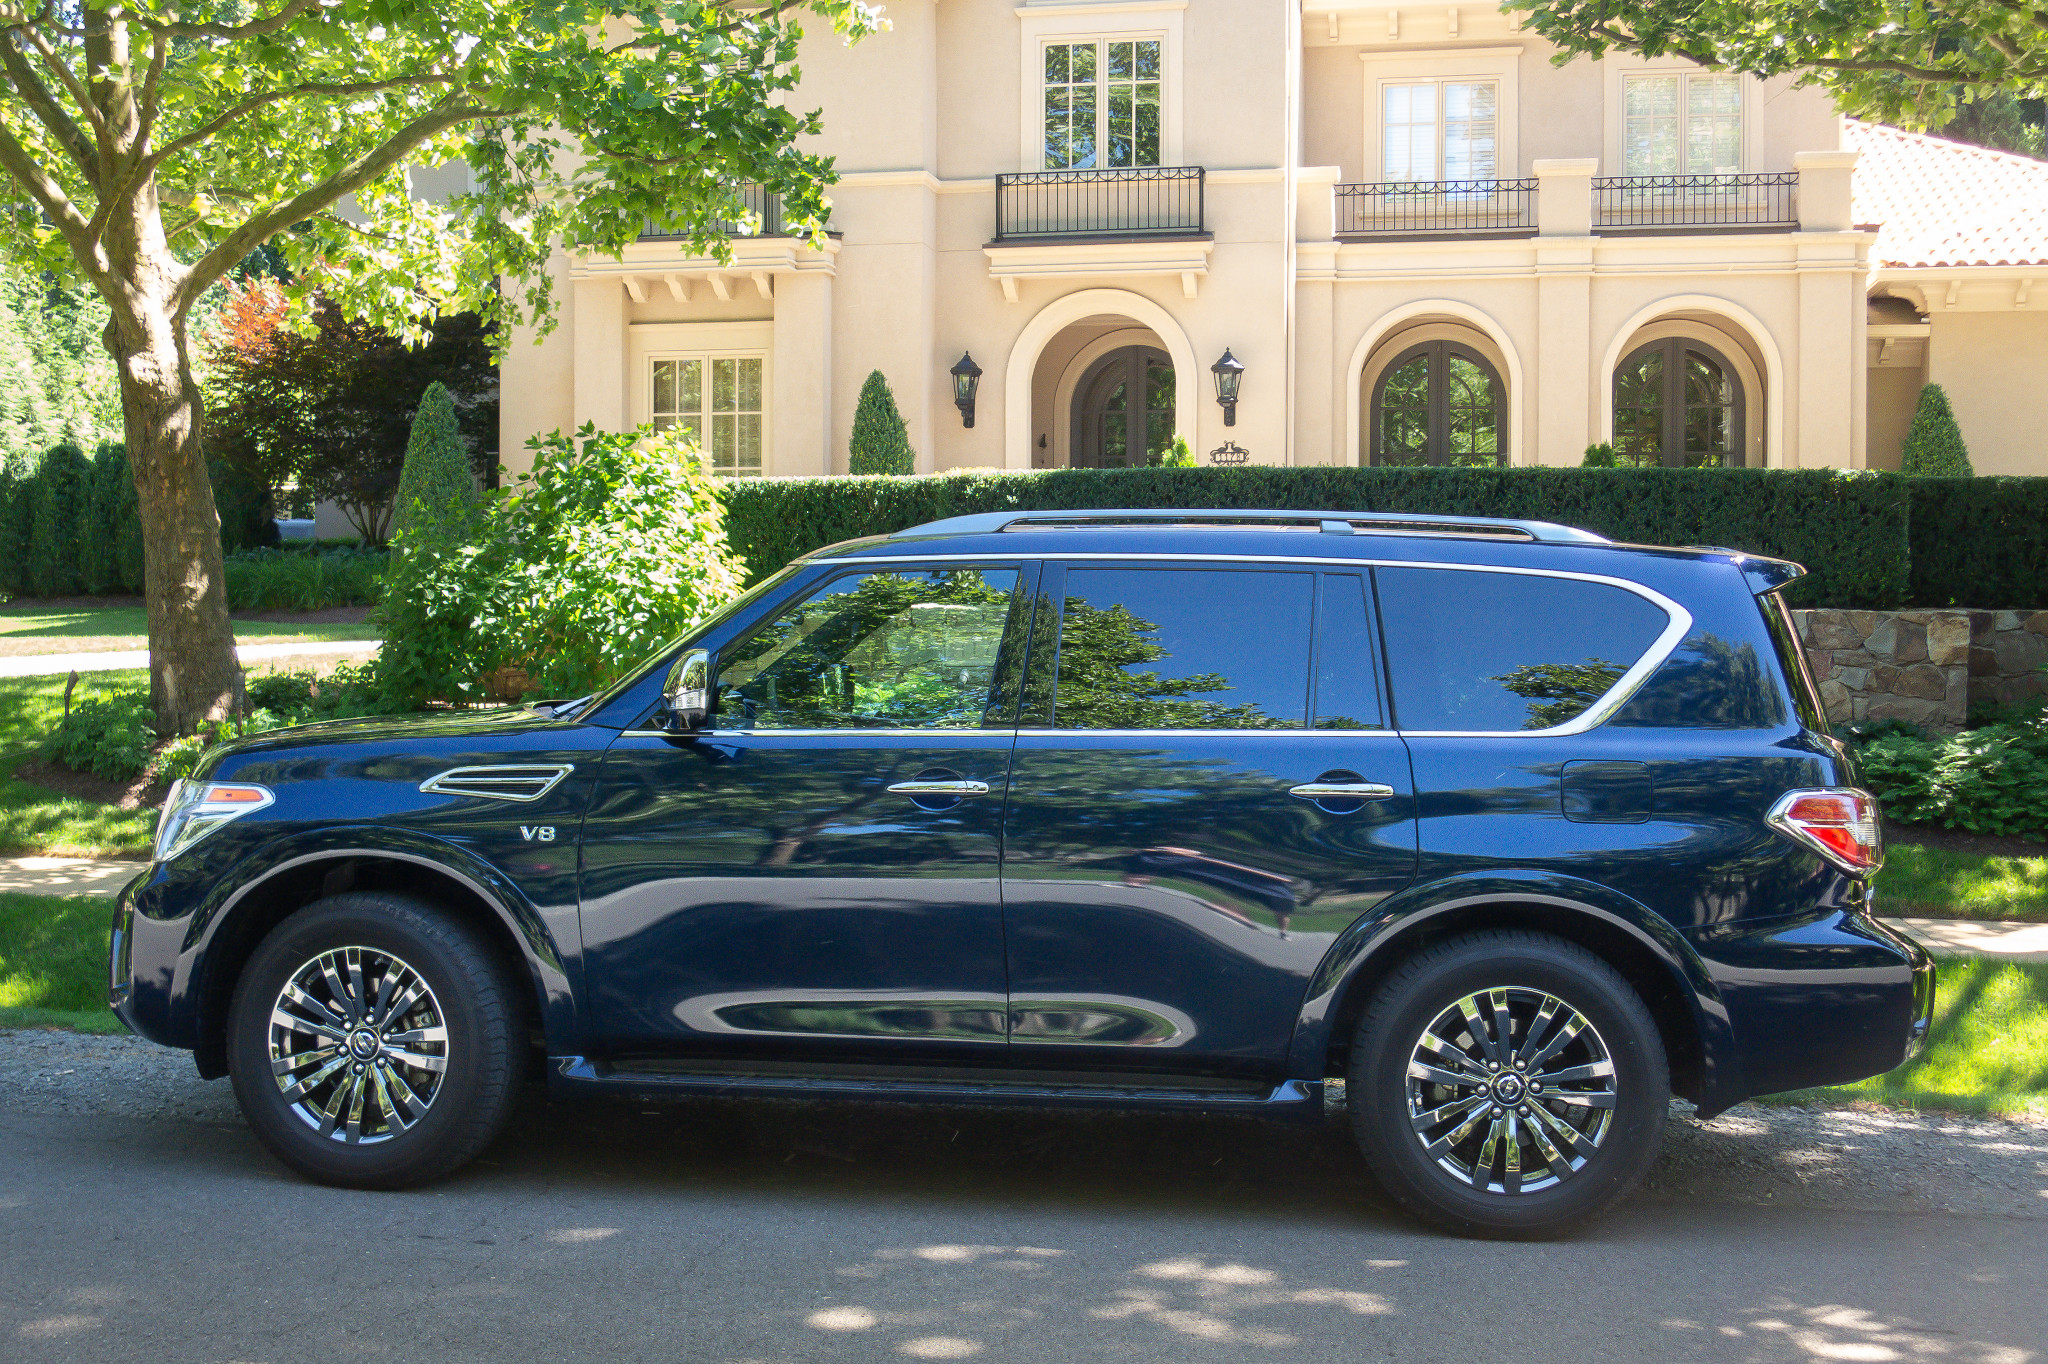 Nissan Armada Towing Capacity >> 2019 Nissan Armada 8 Things We Like And 4 Not So Much